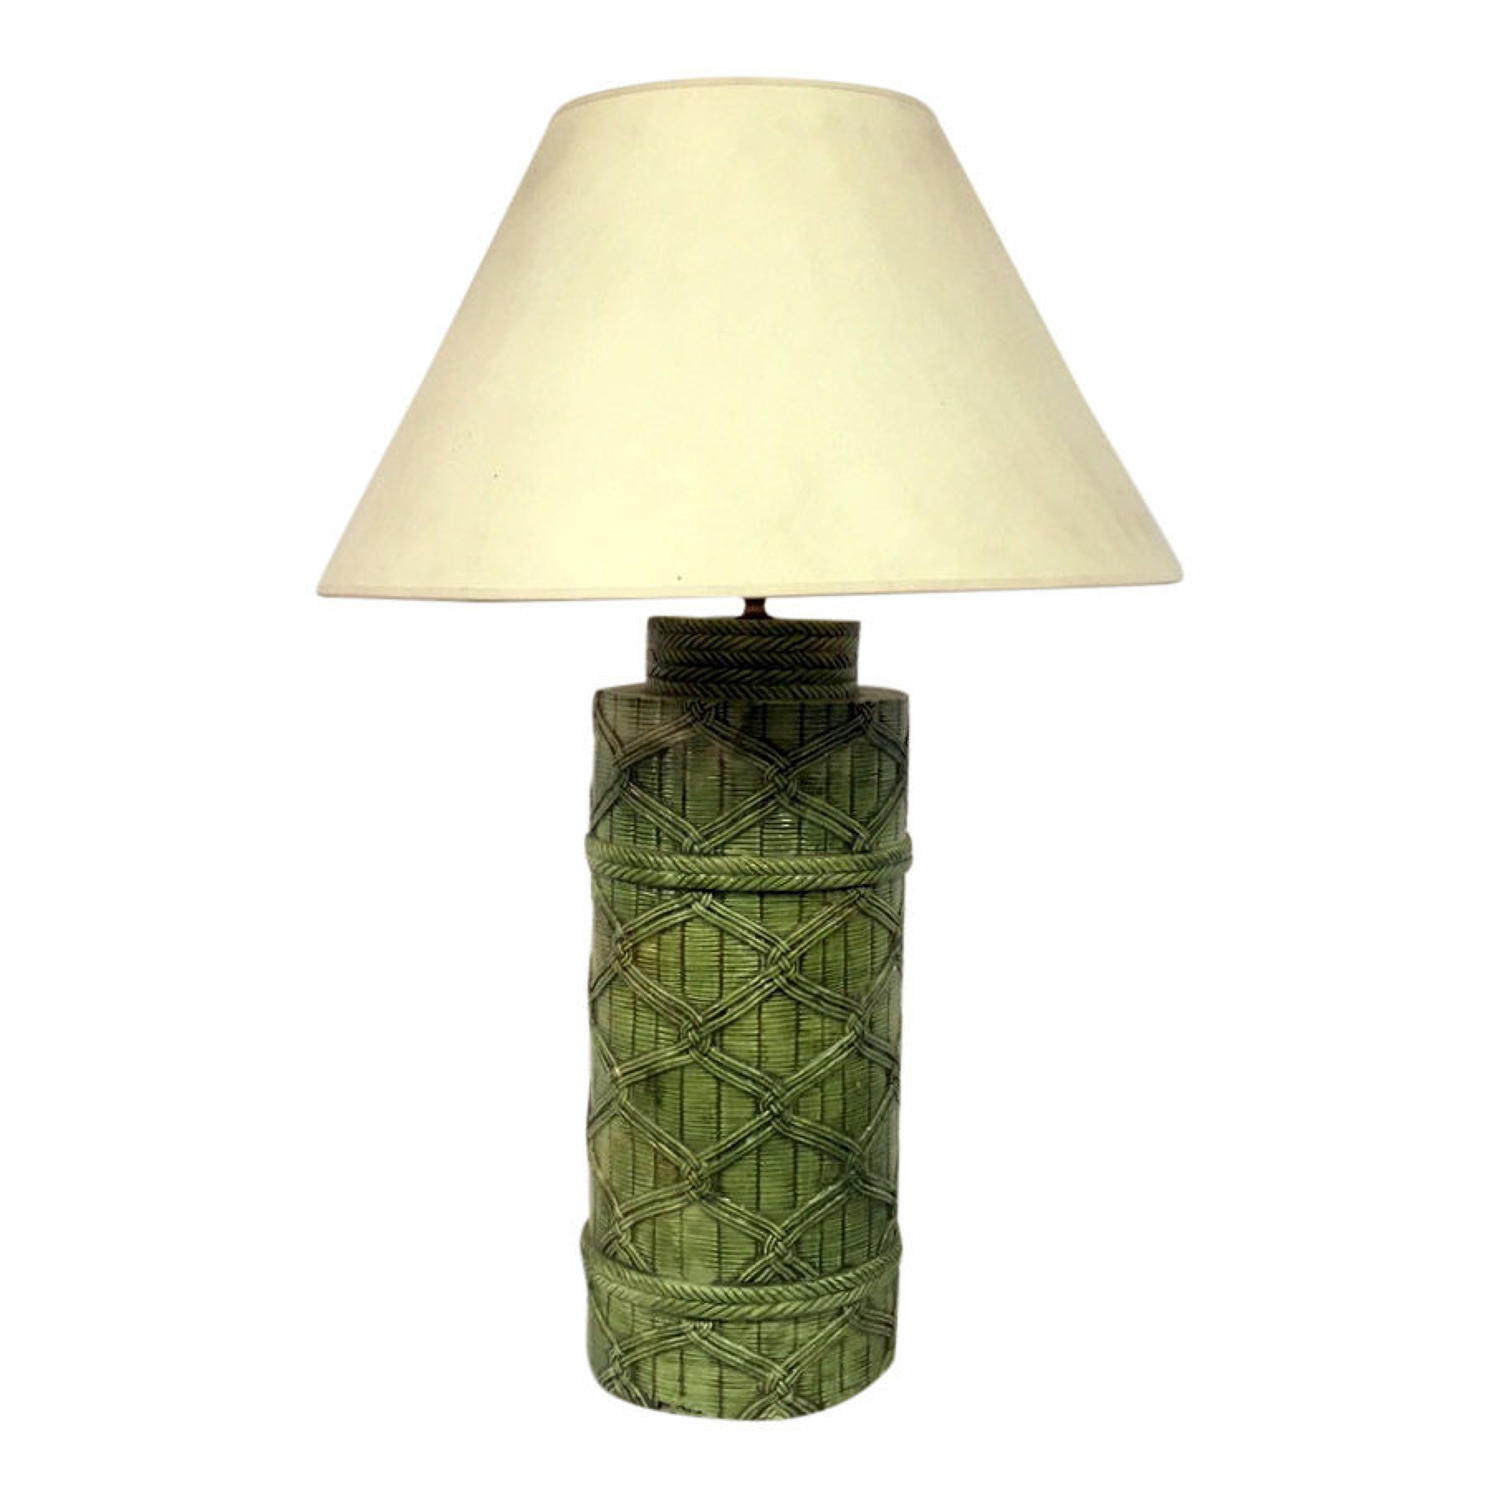 1970s Italian faux rattan ceramic lamp in green